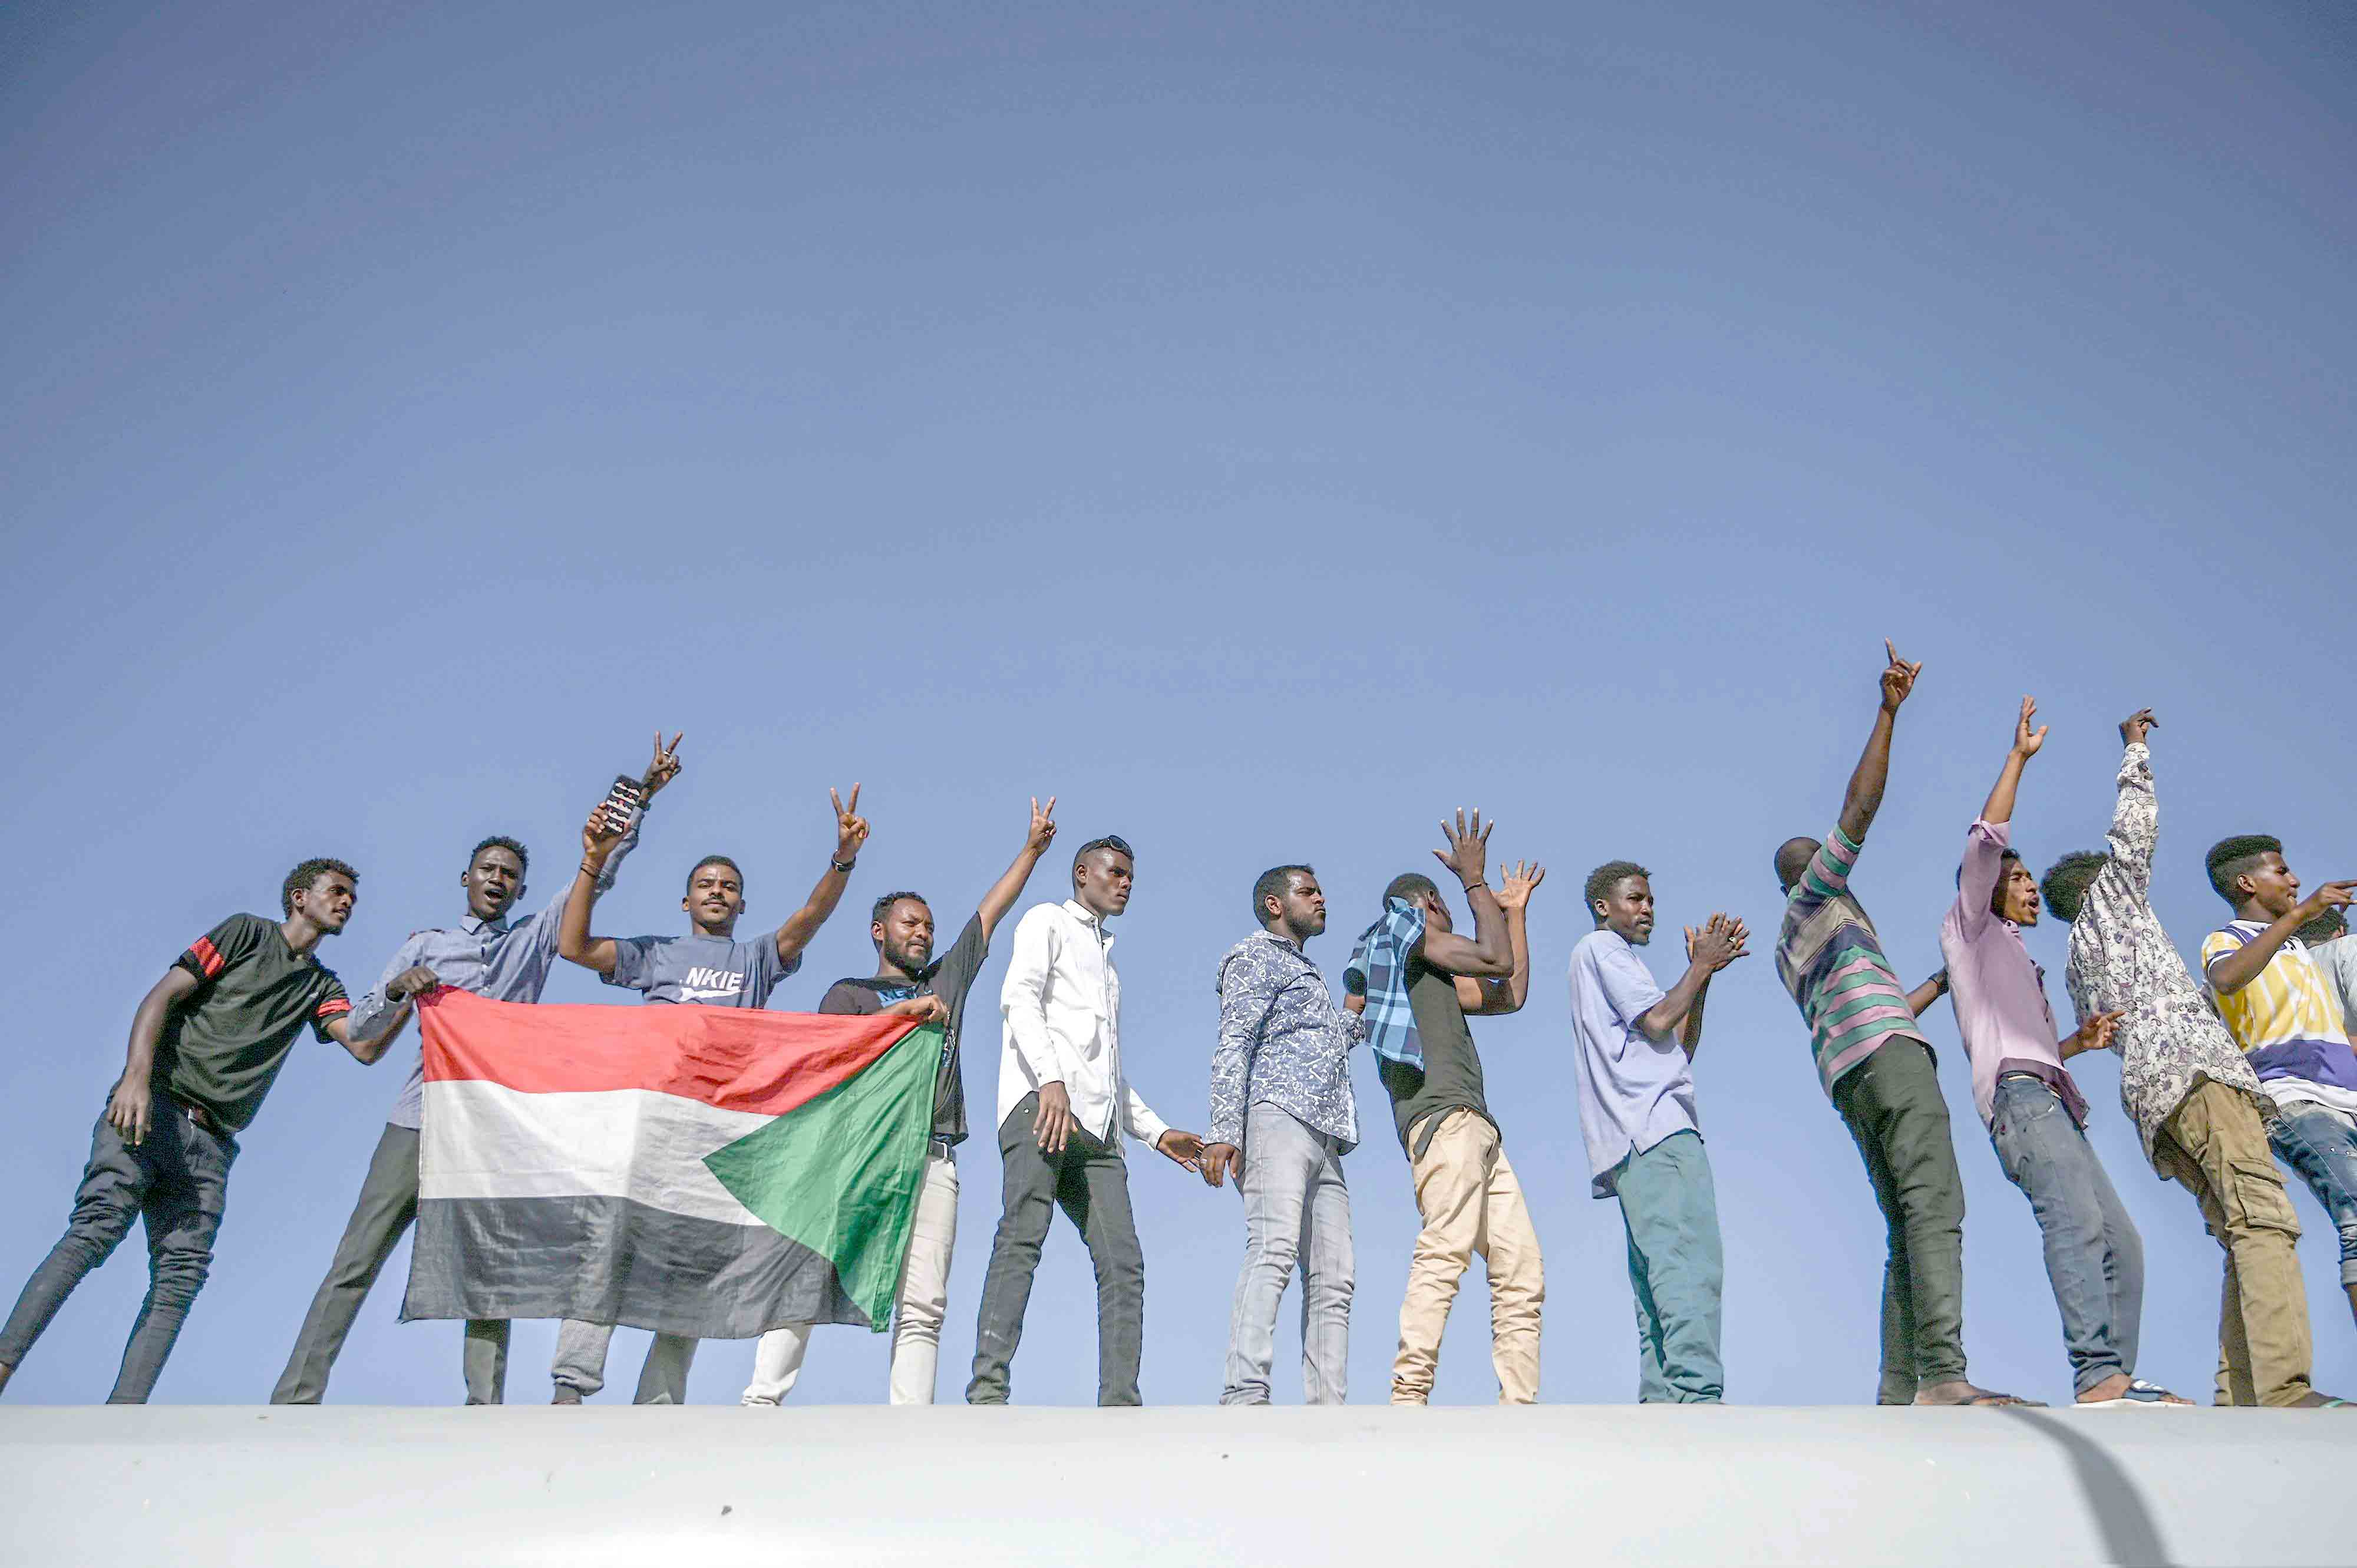 Sudanese protesters from the city of Atbara flash the victory sign in Khartoum, April 23. (AFP)